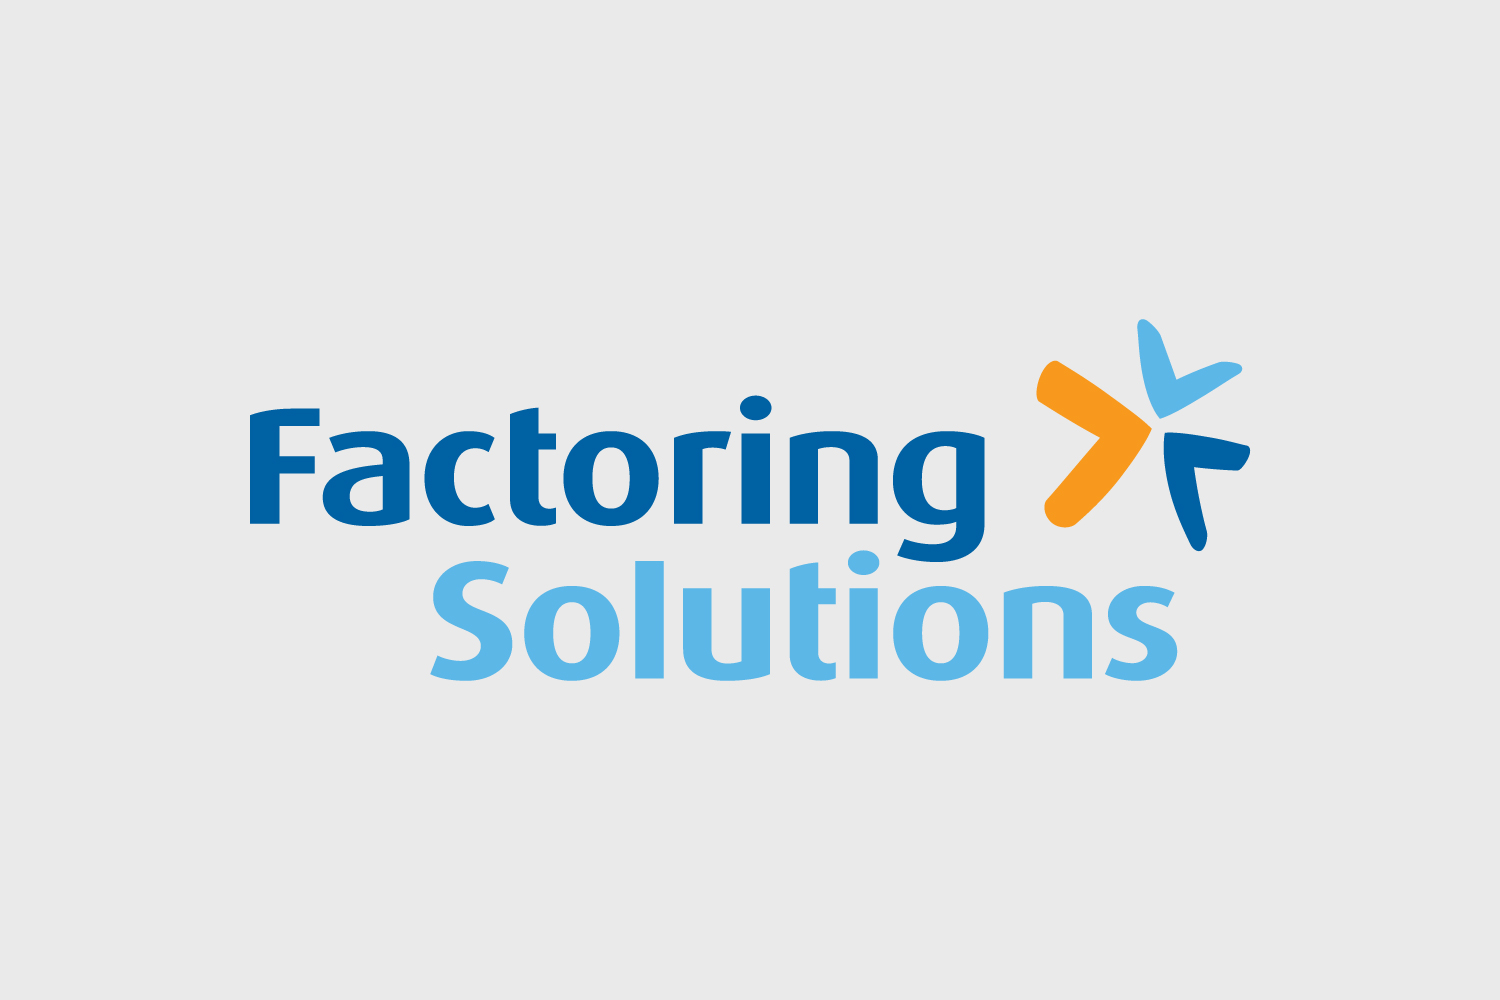 Factoring Solutions logo